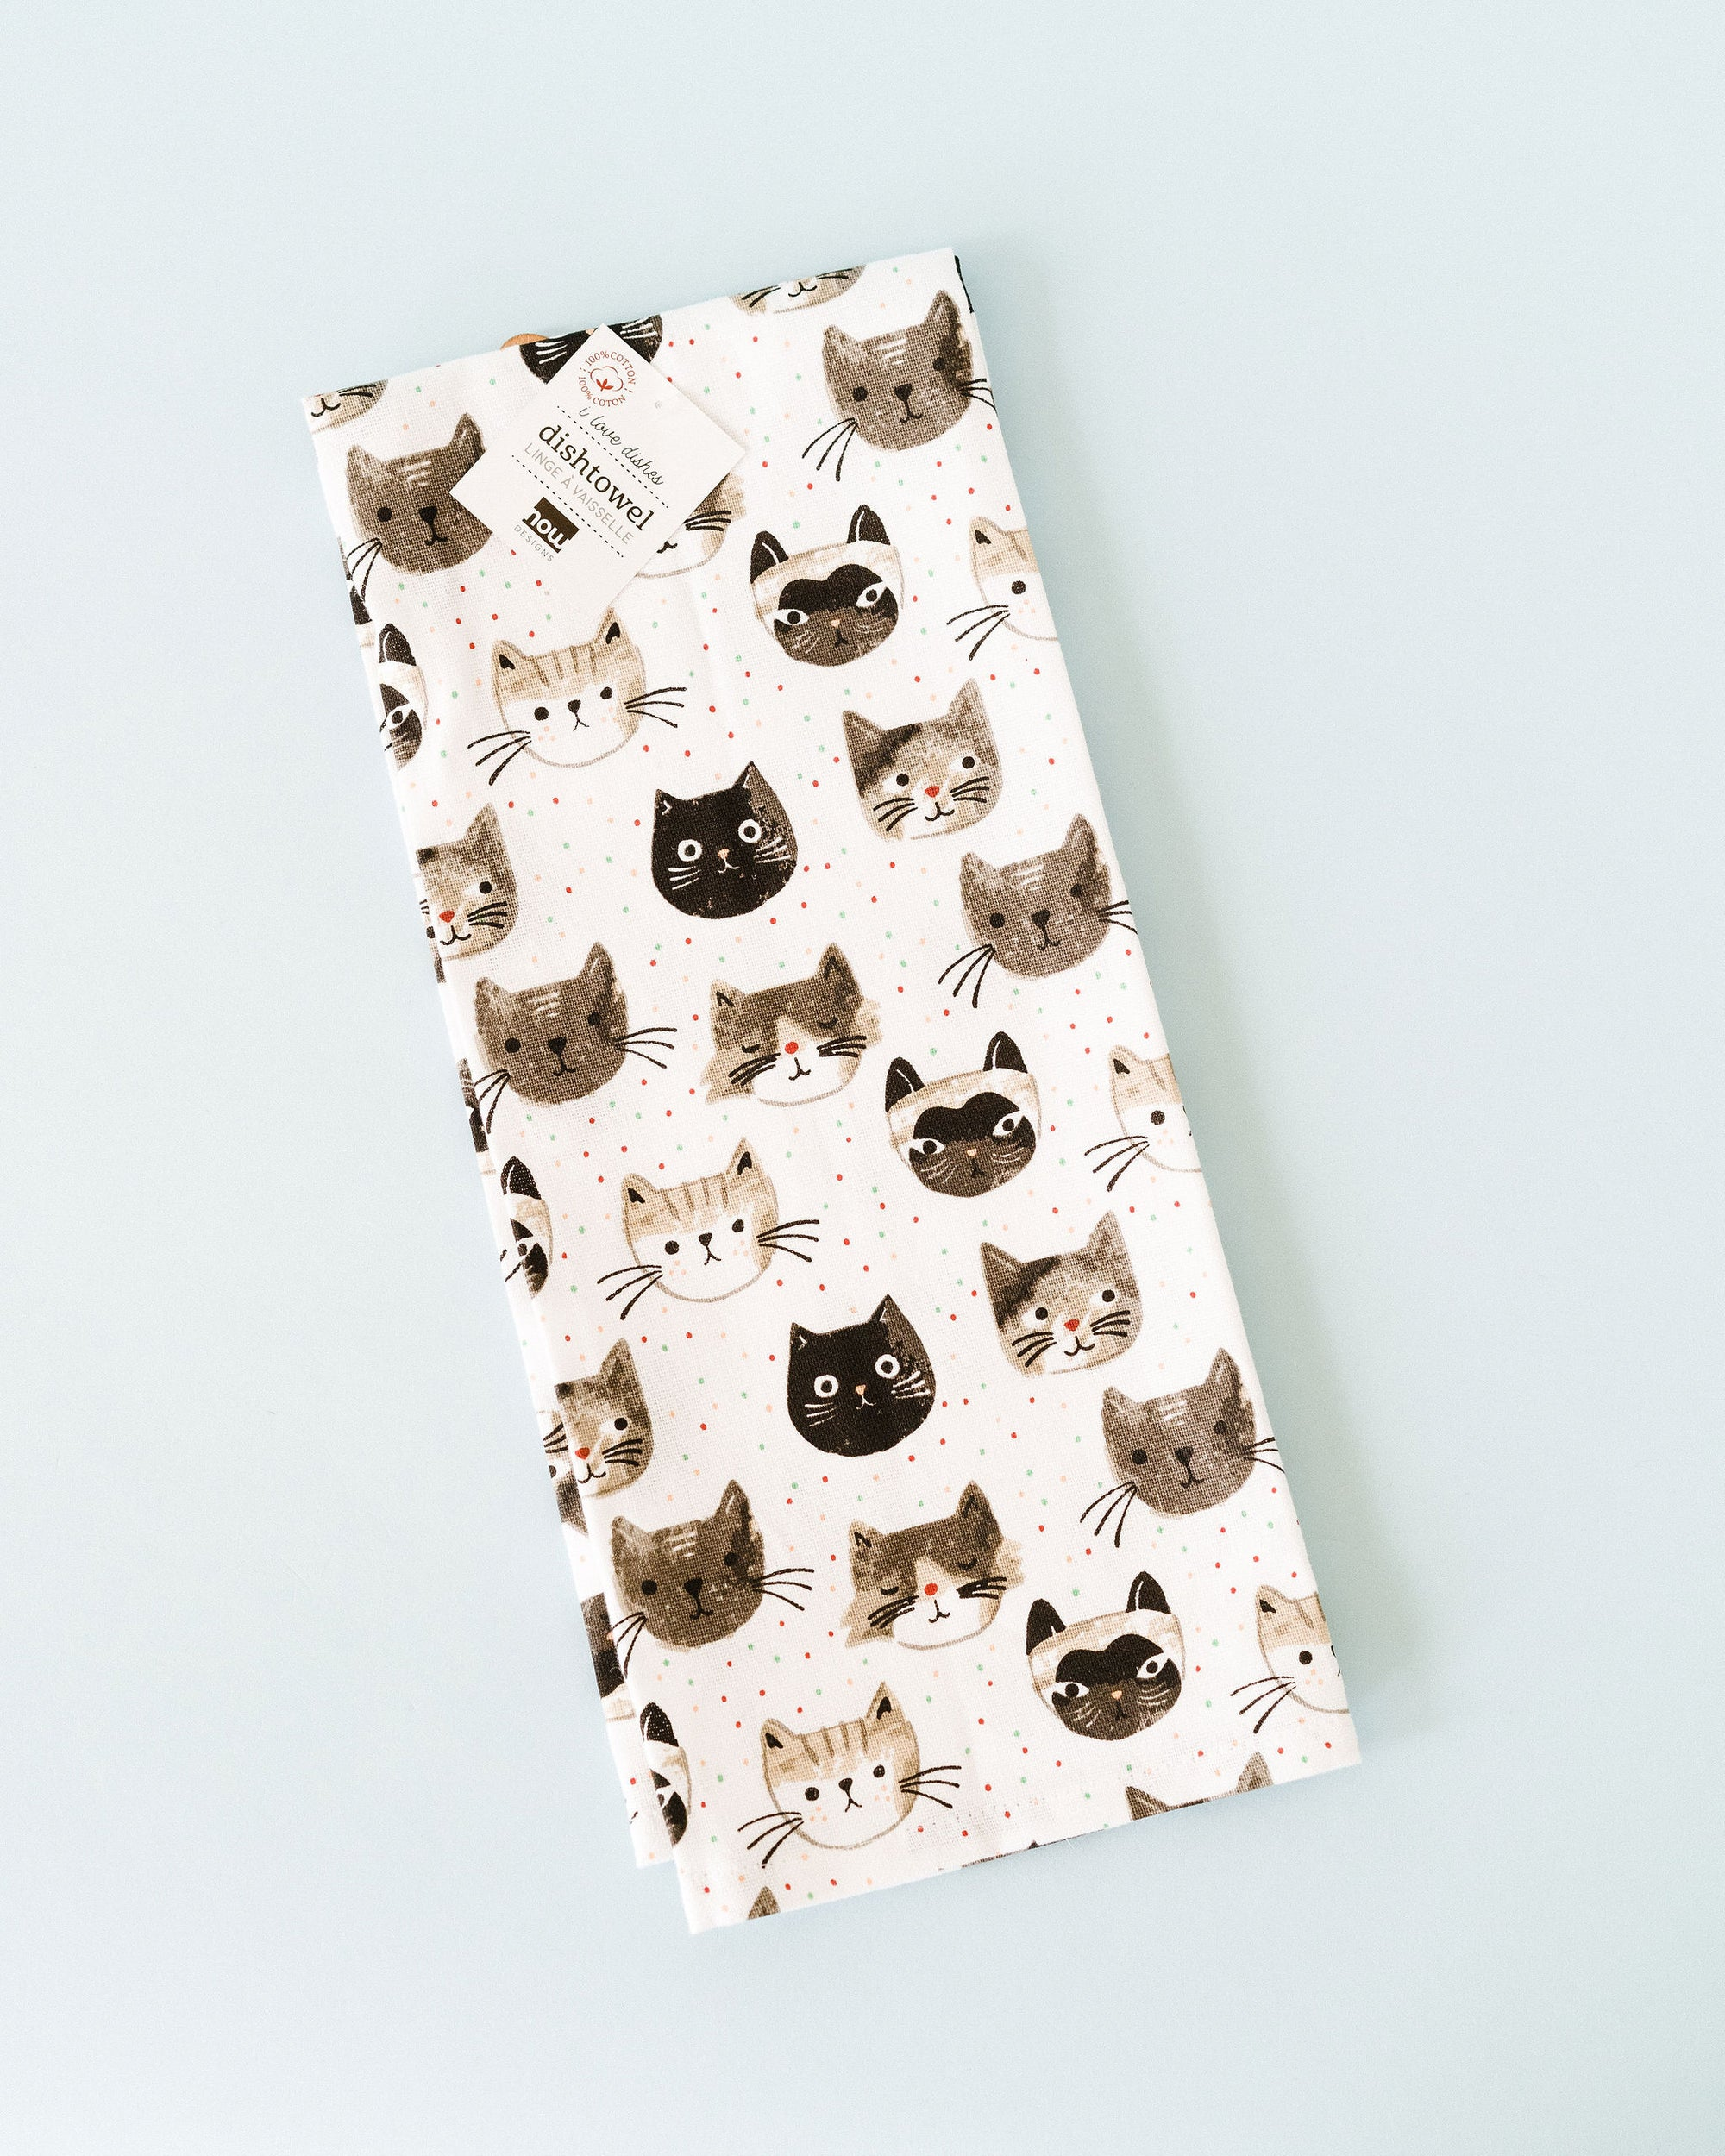 Cats Meow Towel